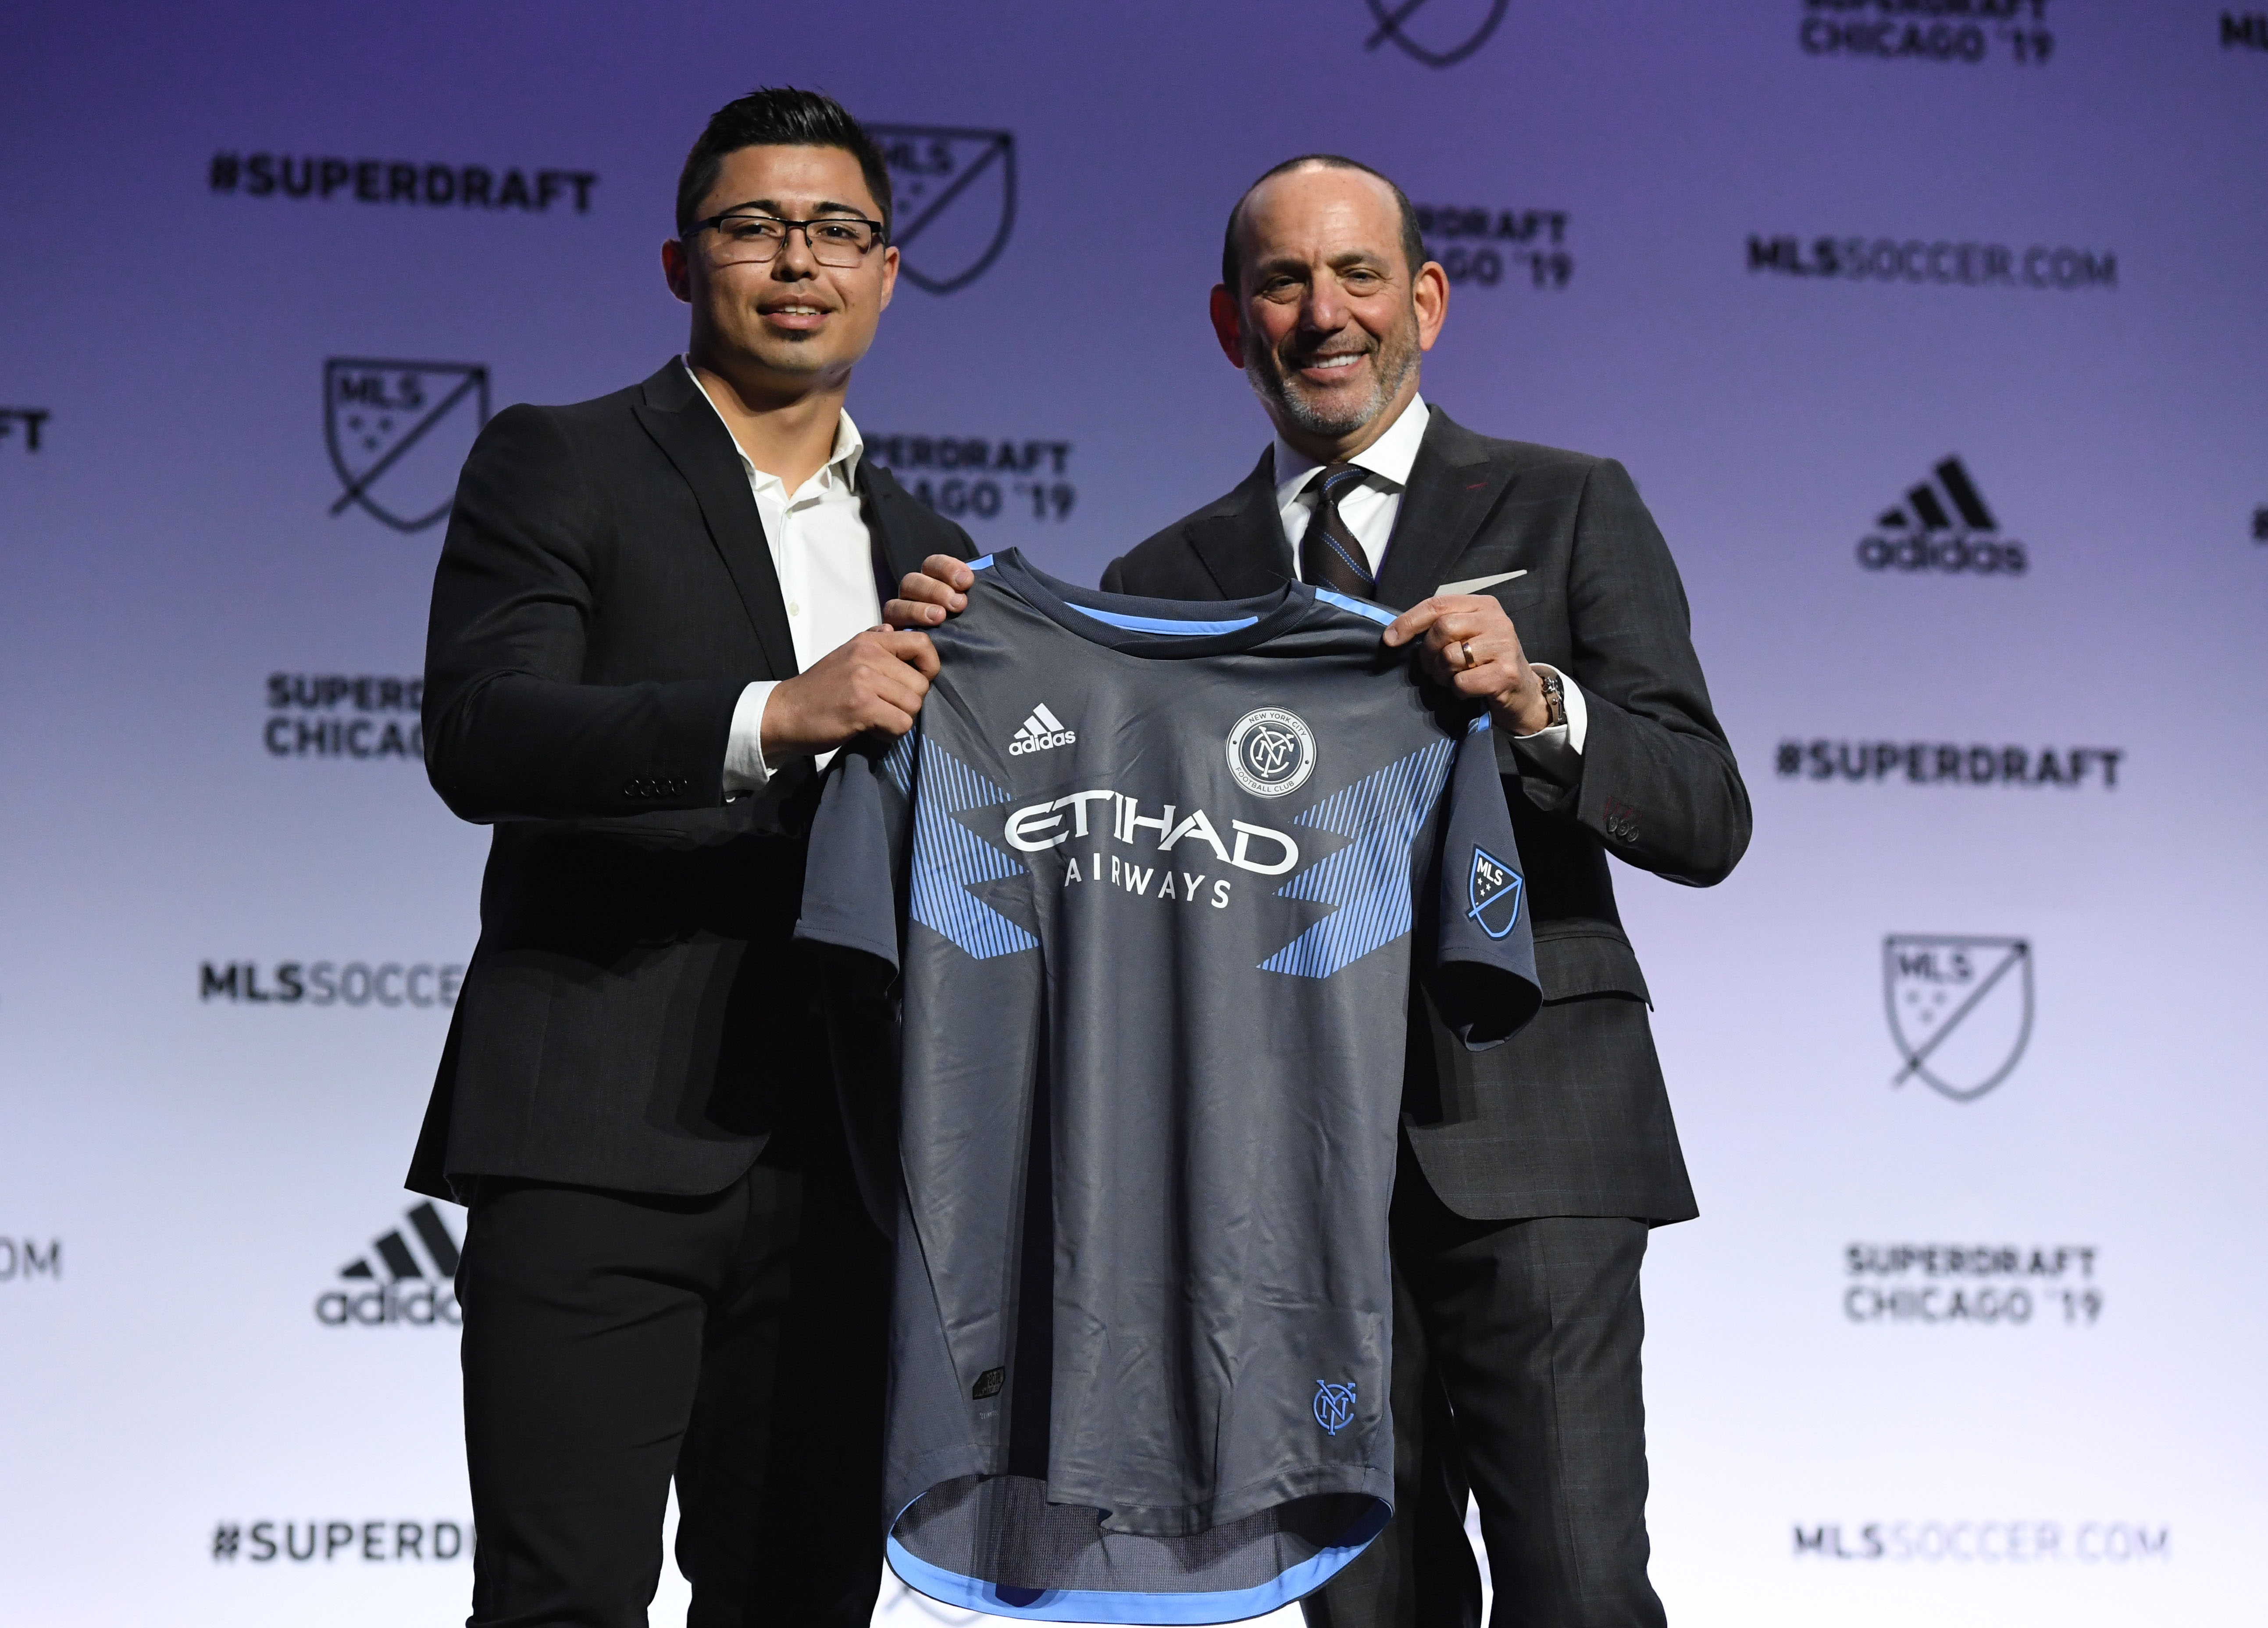 Luis Barraza greets MLS commissioner Don Garber after being selected as the number twelve overall pick to New York City FC in the first round of the 2019 MLS Super Draft